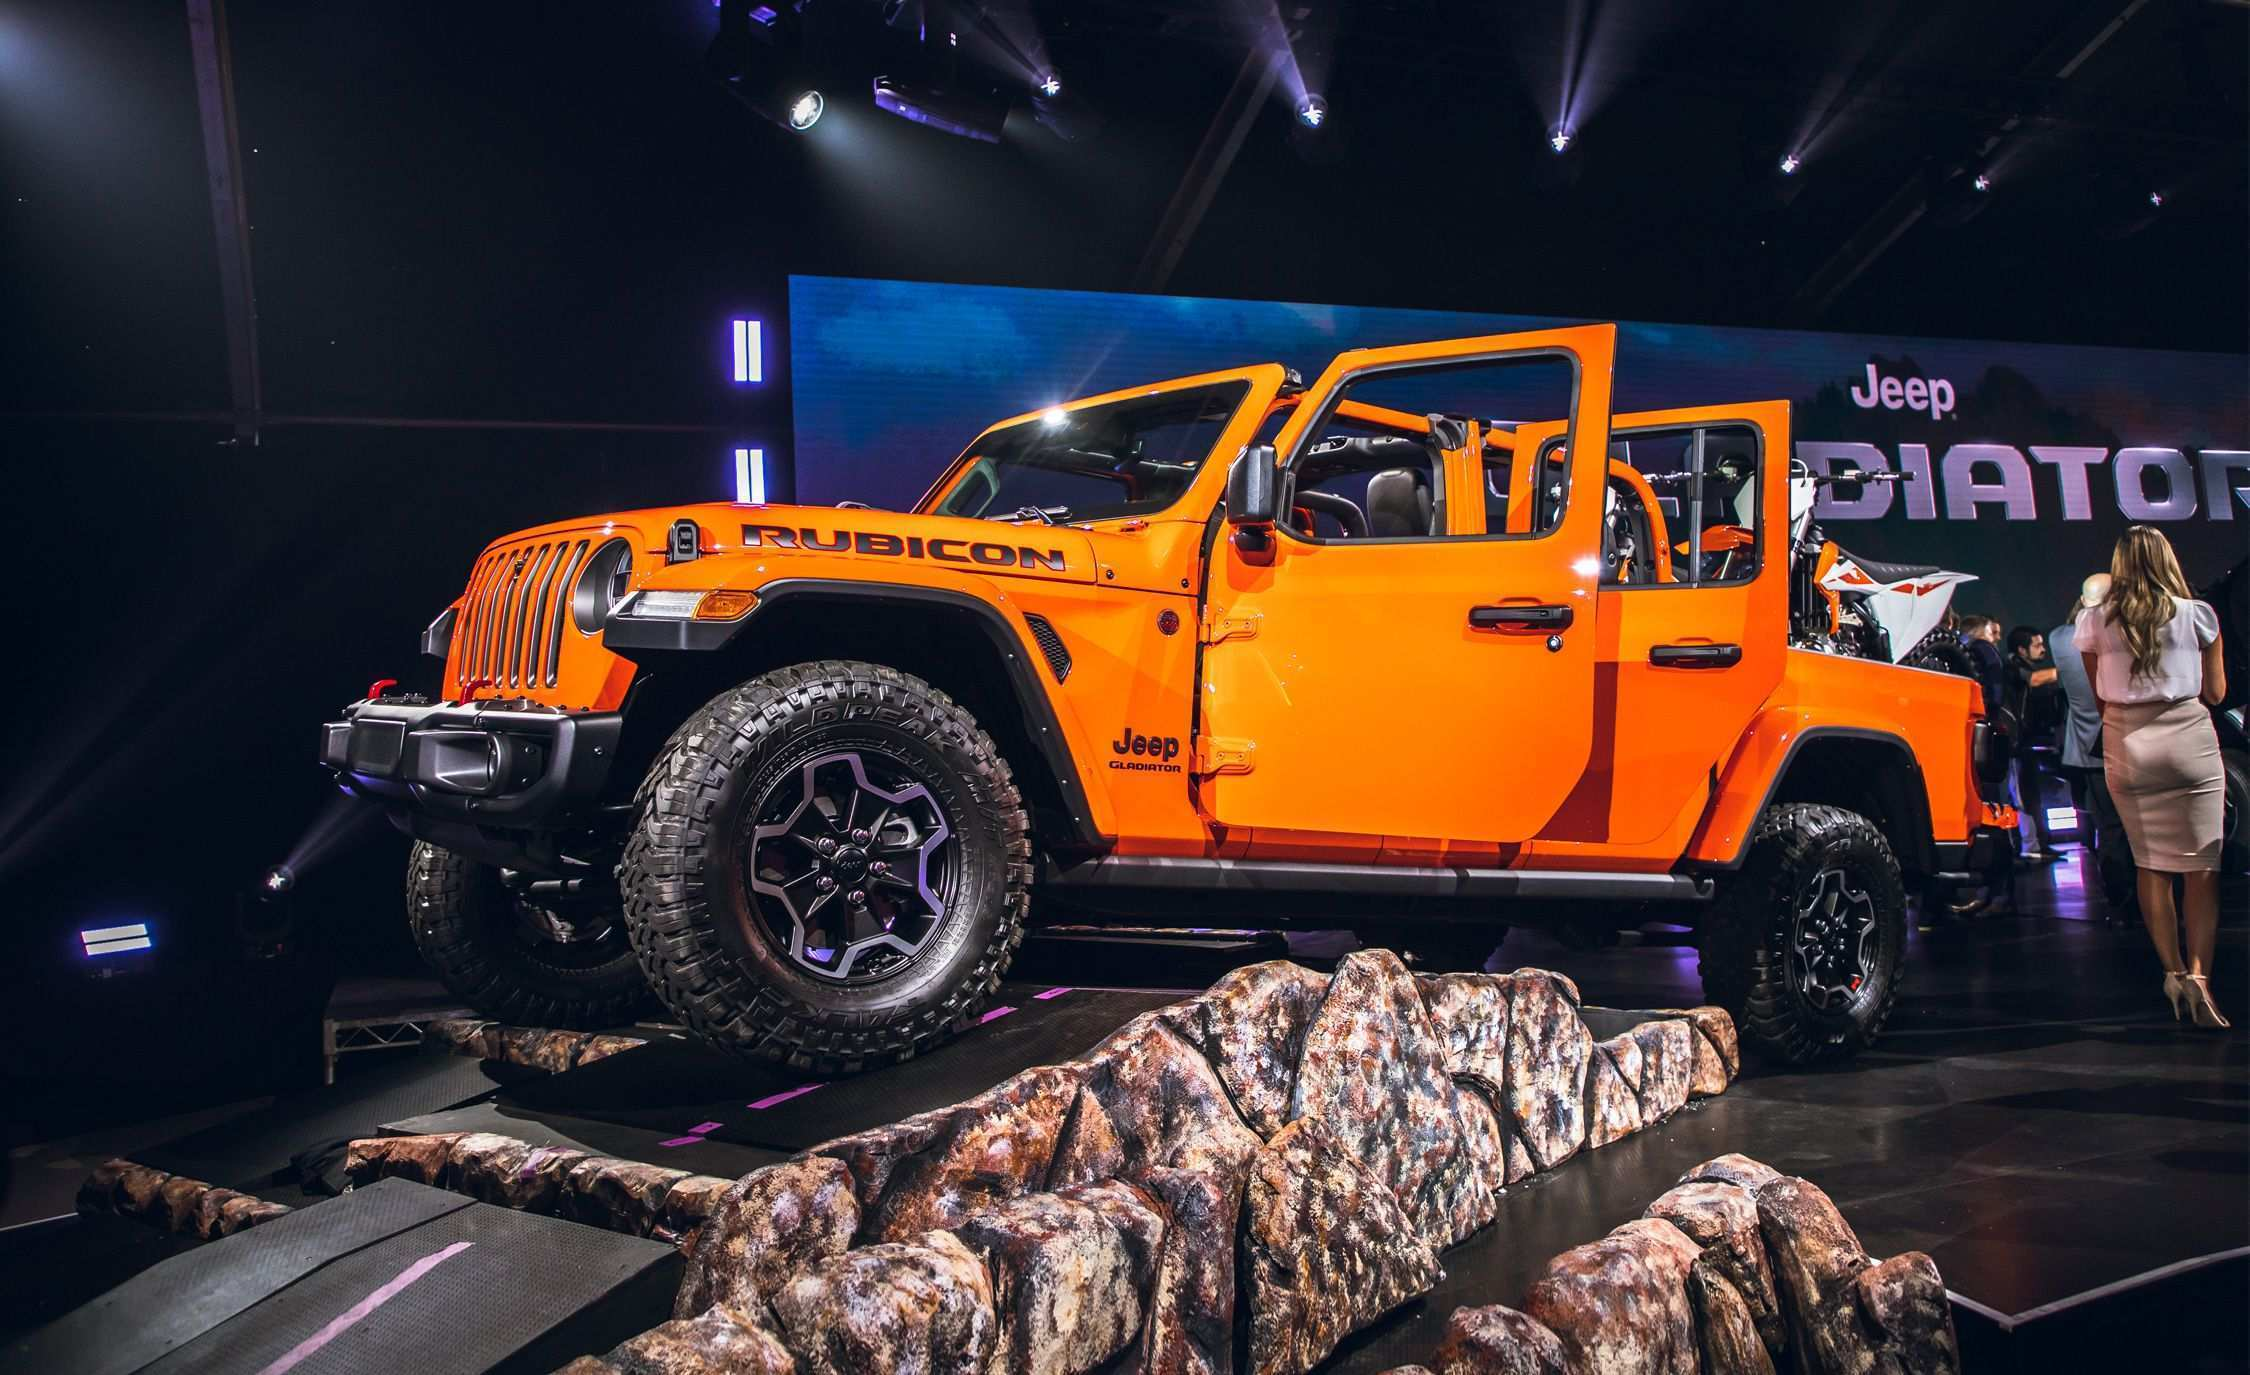 94 Concept of 2020 Jeep Rubicon Concept for 2020 Jeep Rubicon